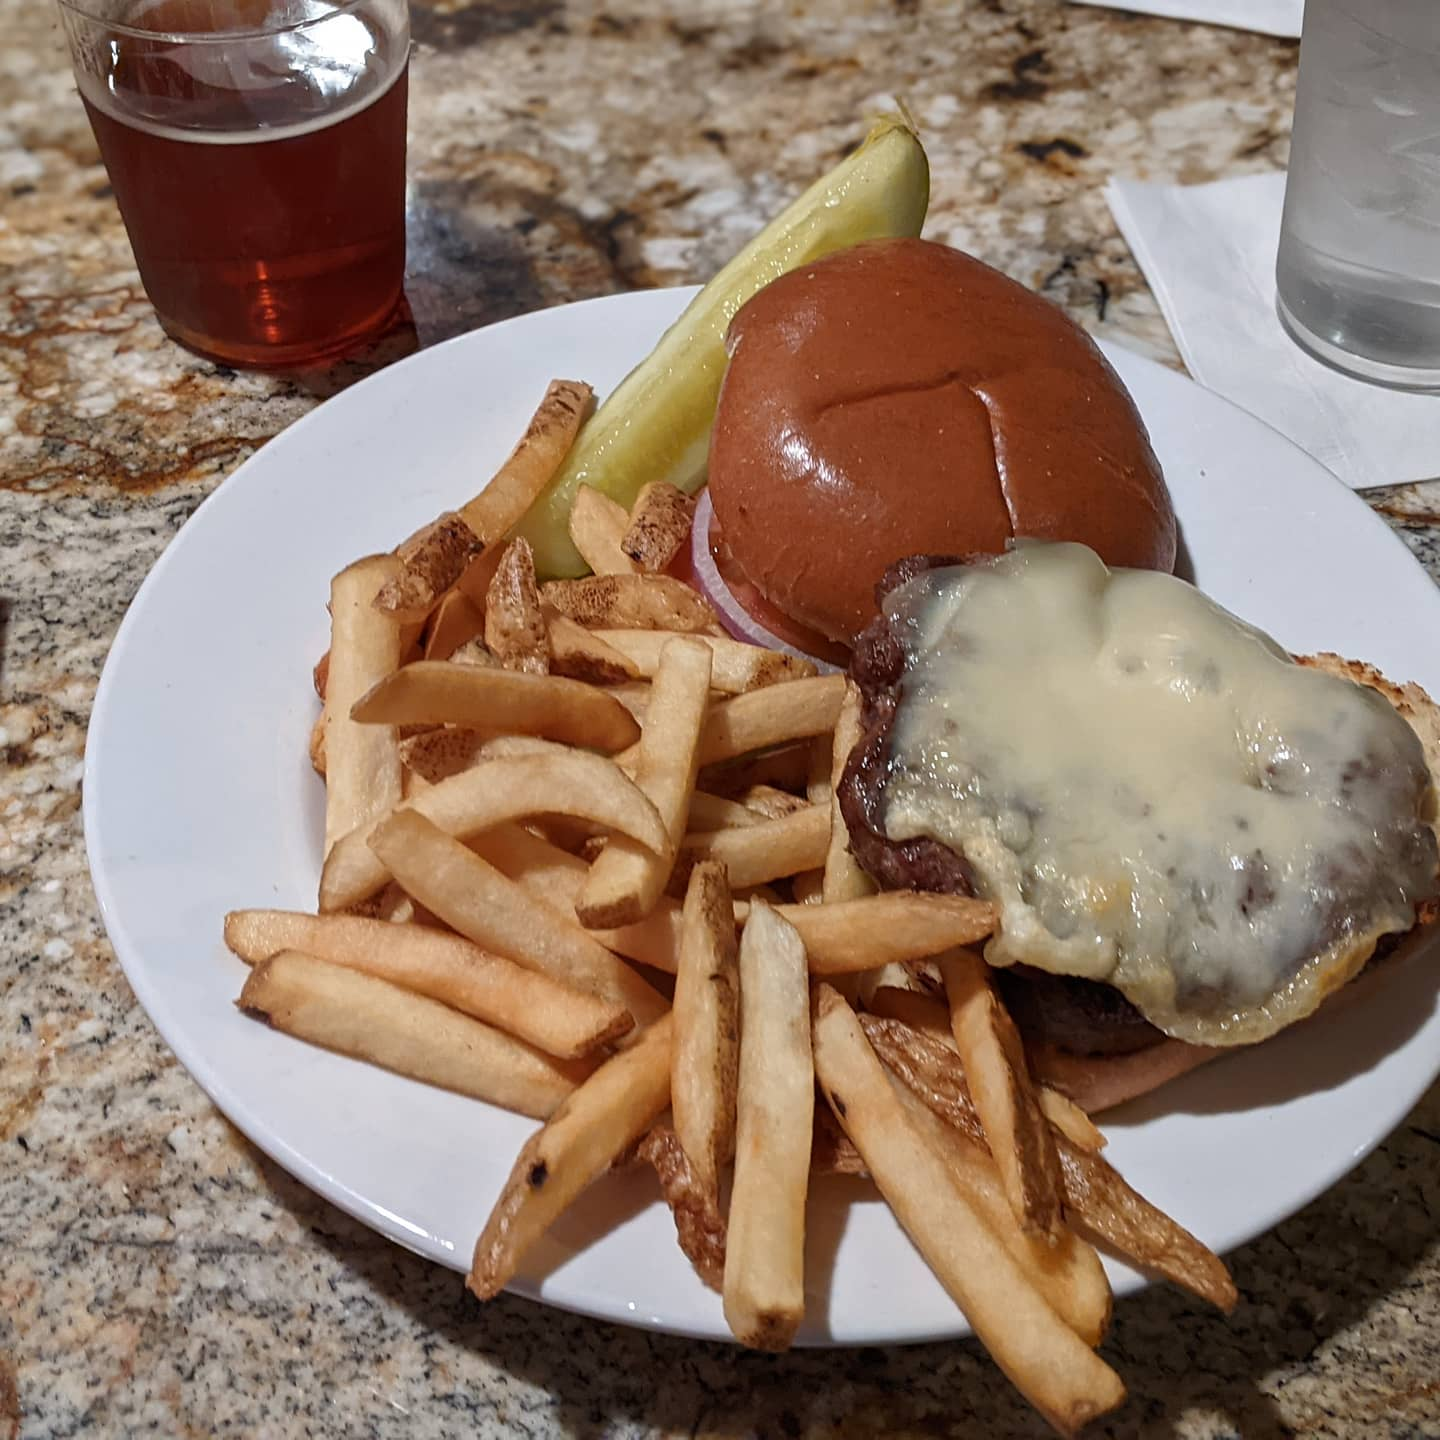 There are days I have some great #foodporn... But there are days like today after a 15 mile hike in the rain that a simple burger and fries at the hotel bar is what tickles my fancy. And it was delicious!